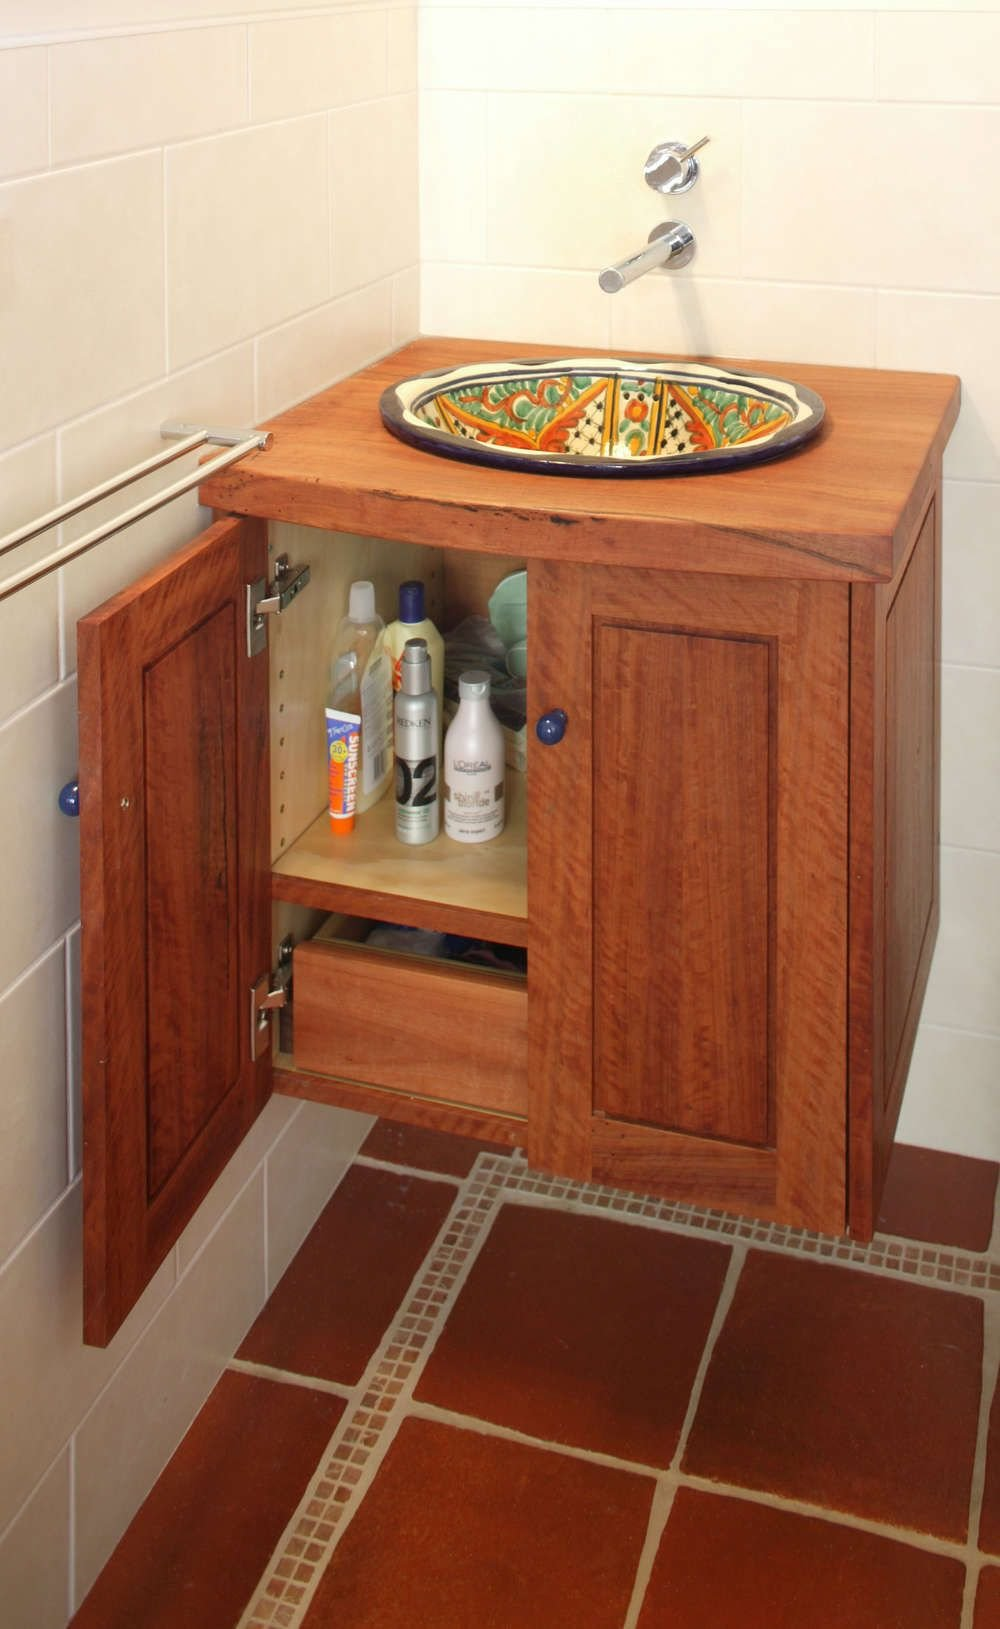 Select Custom Joinery Redgum Plywood Vanity Solid Wood Vanity Units For Bathrooms